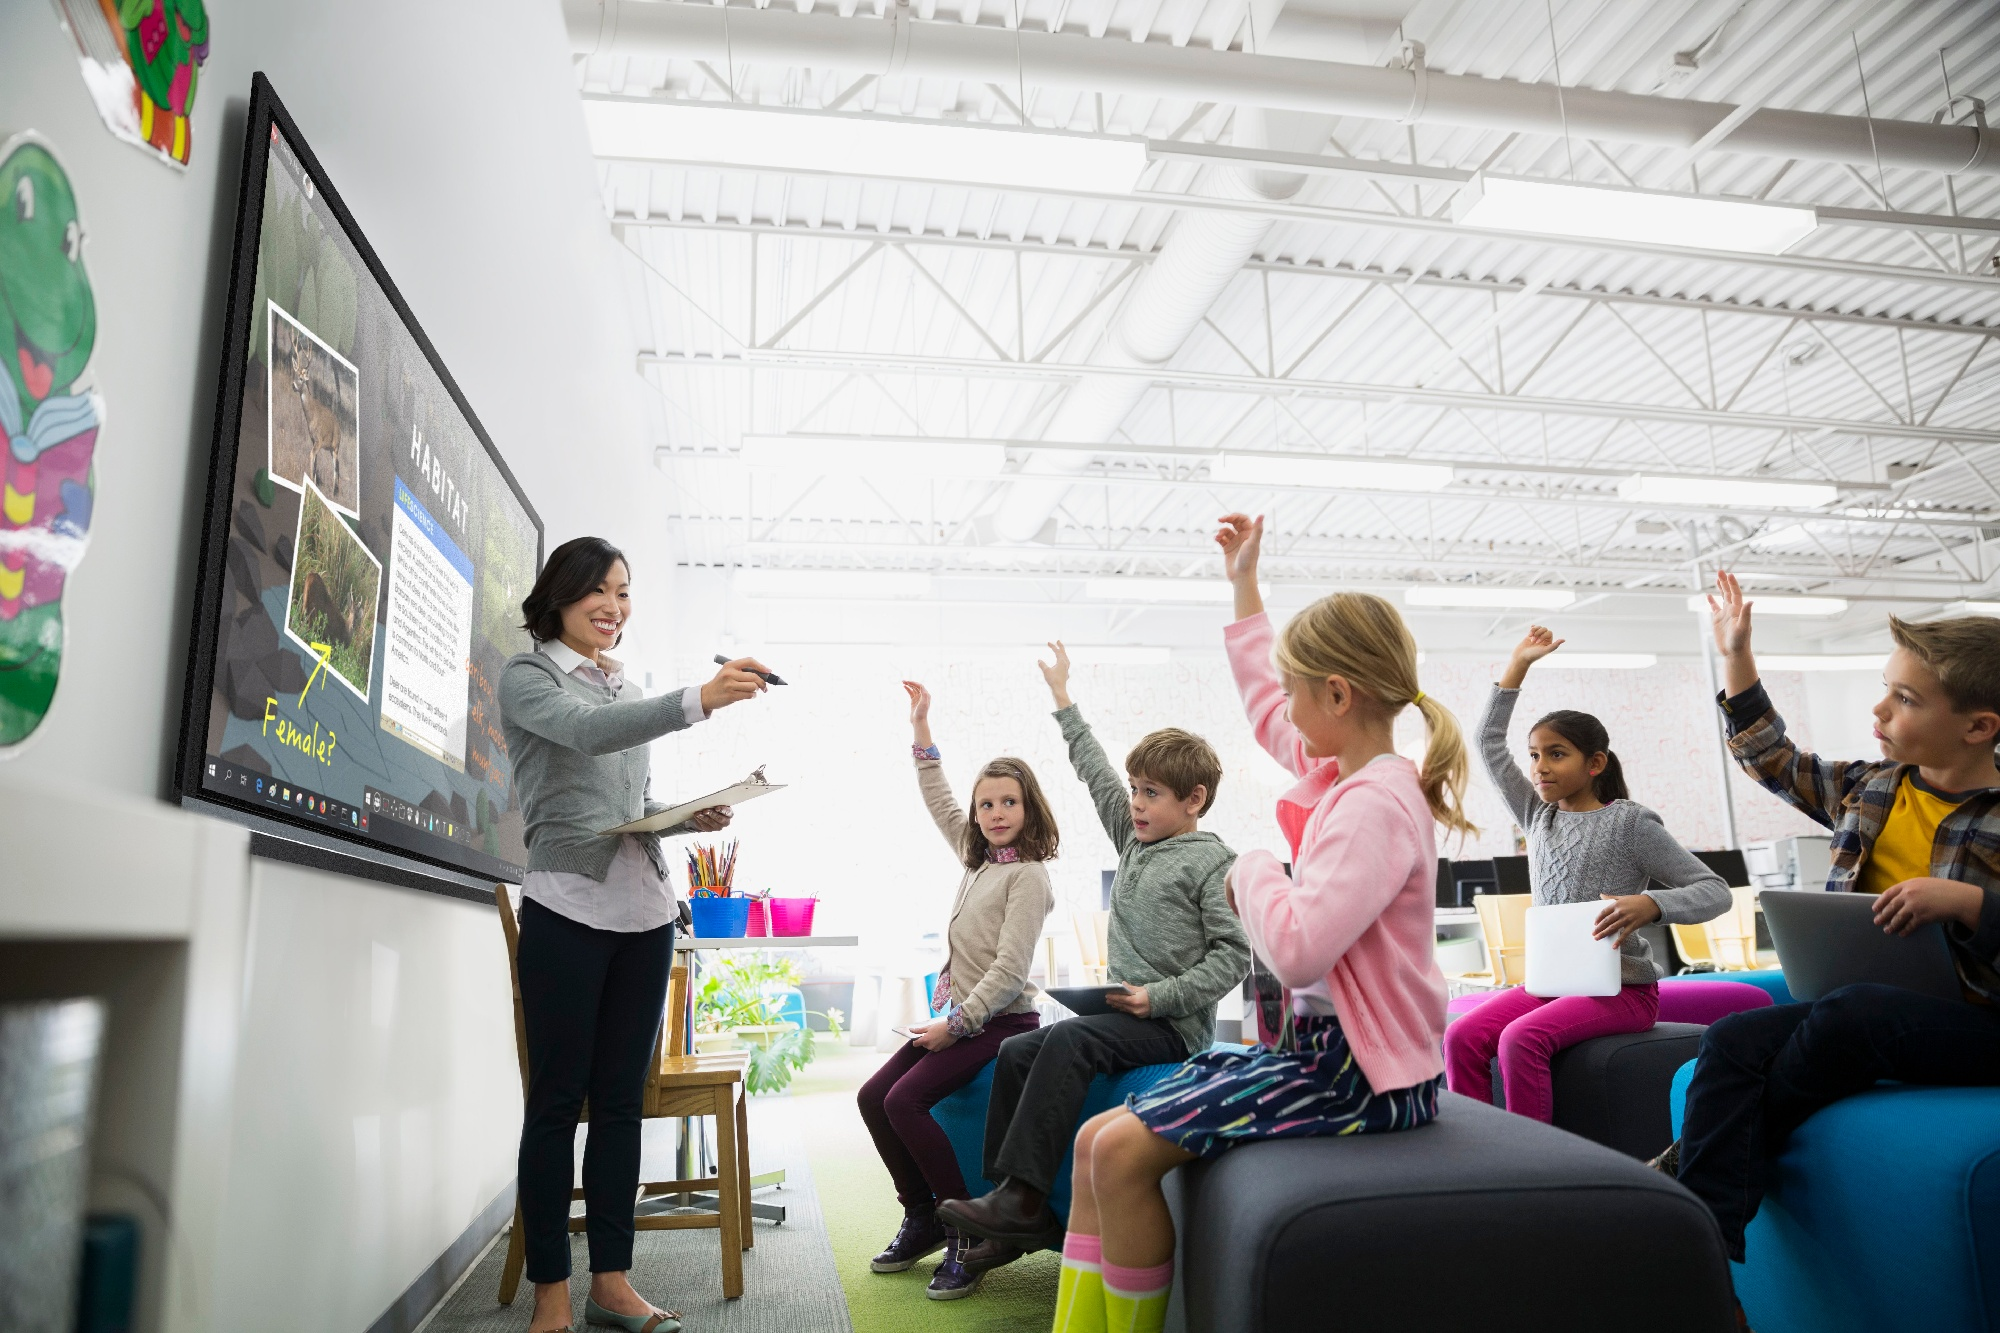 smart-education-bee-smart-city-viewsonic-classroom